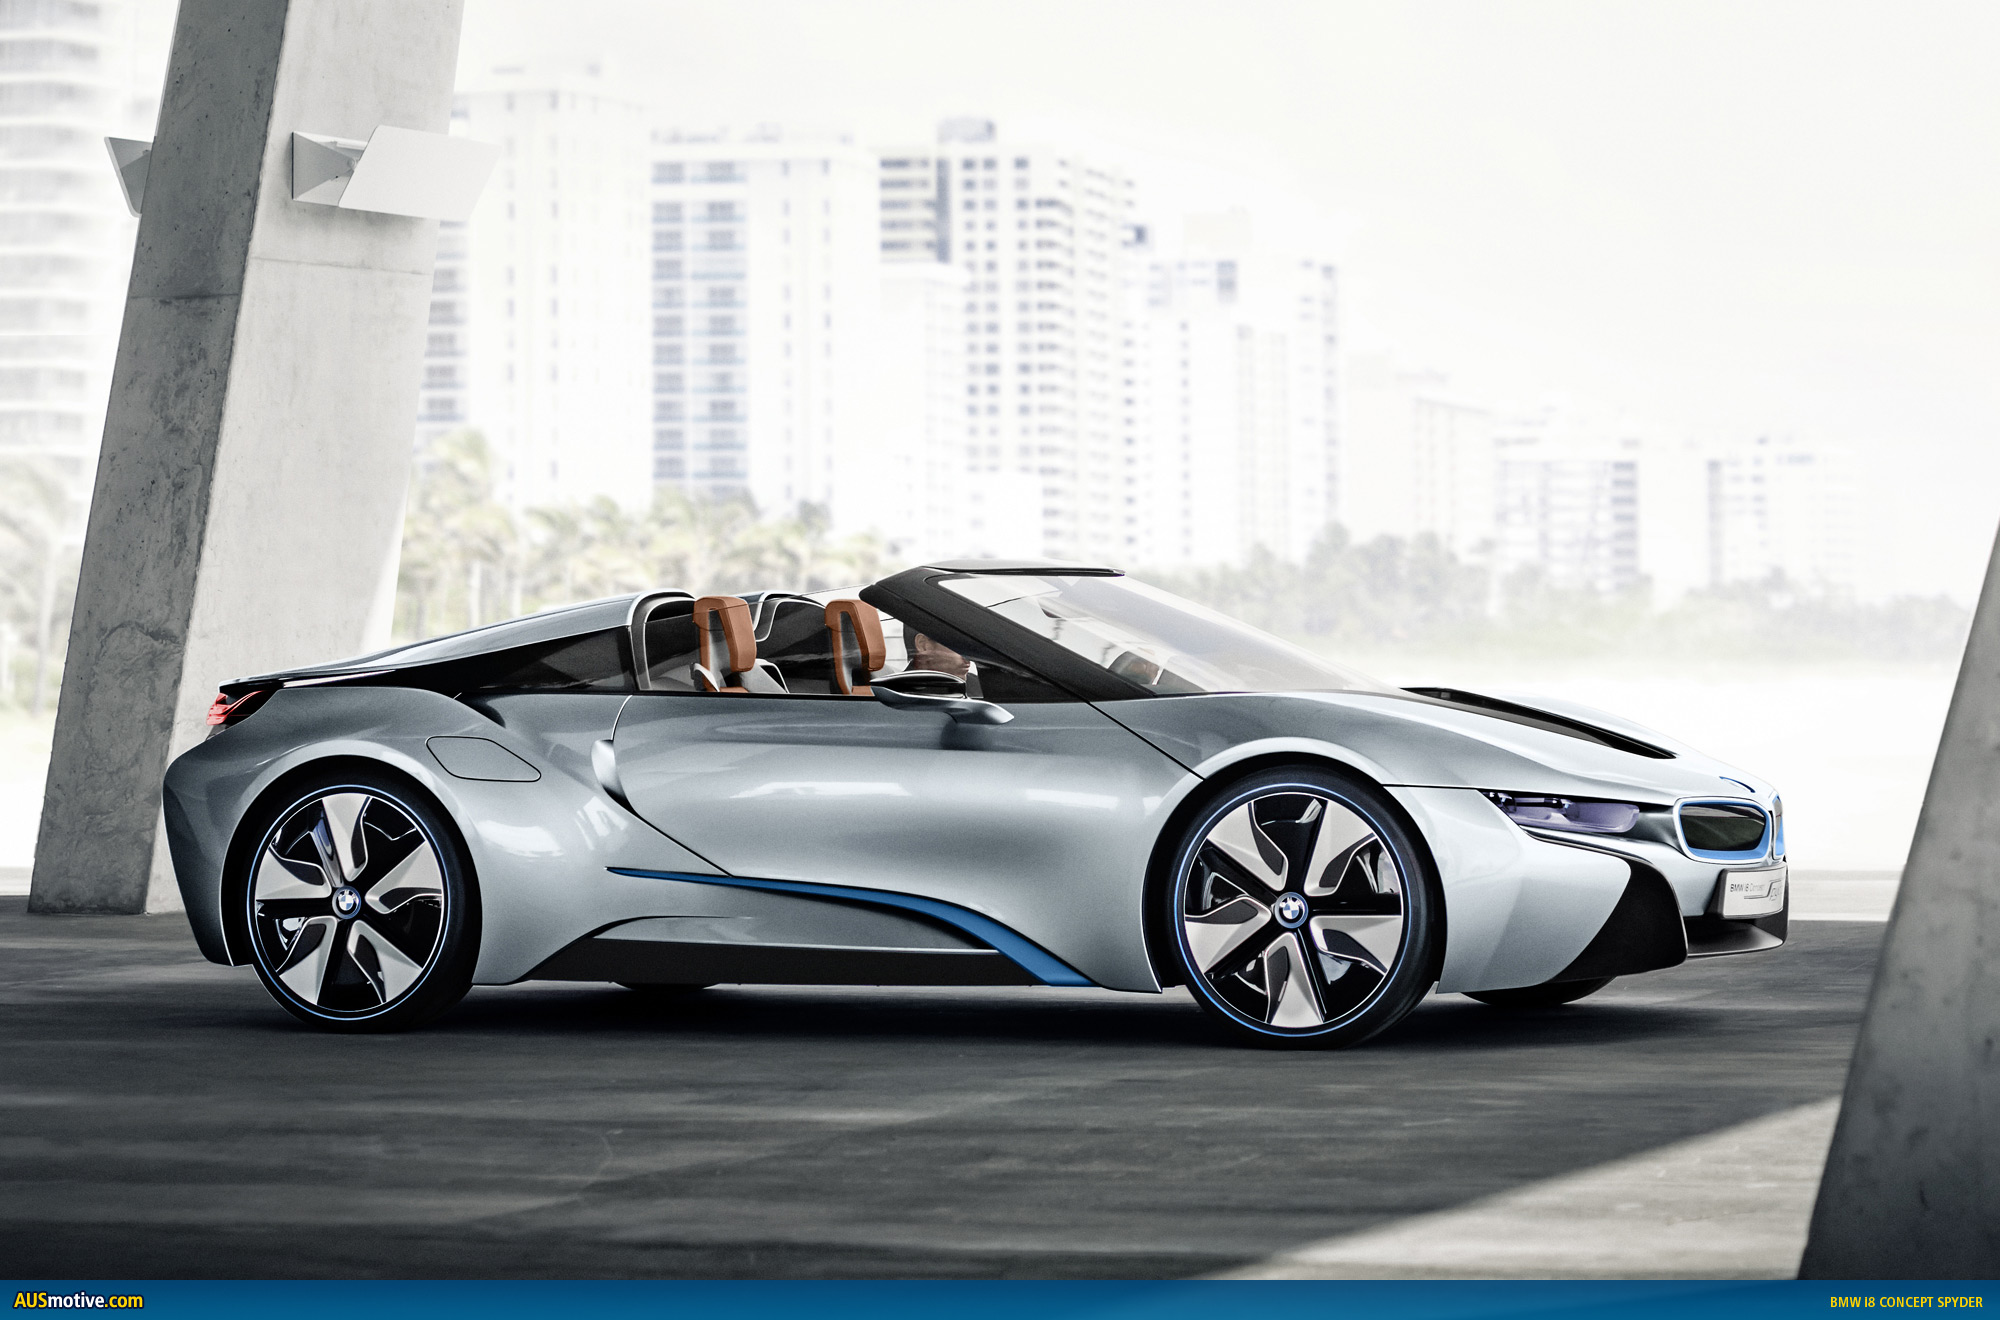 Ausmotive Com Bmw I8 Concept Spyder Revealed